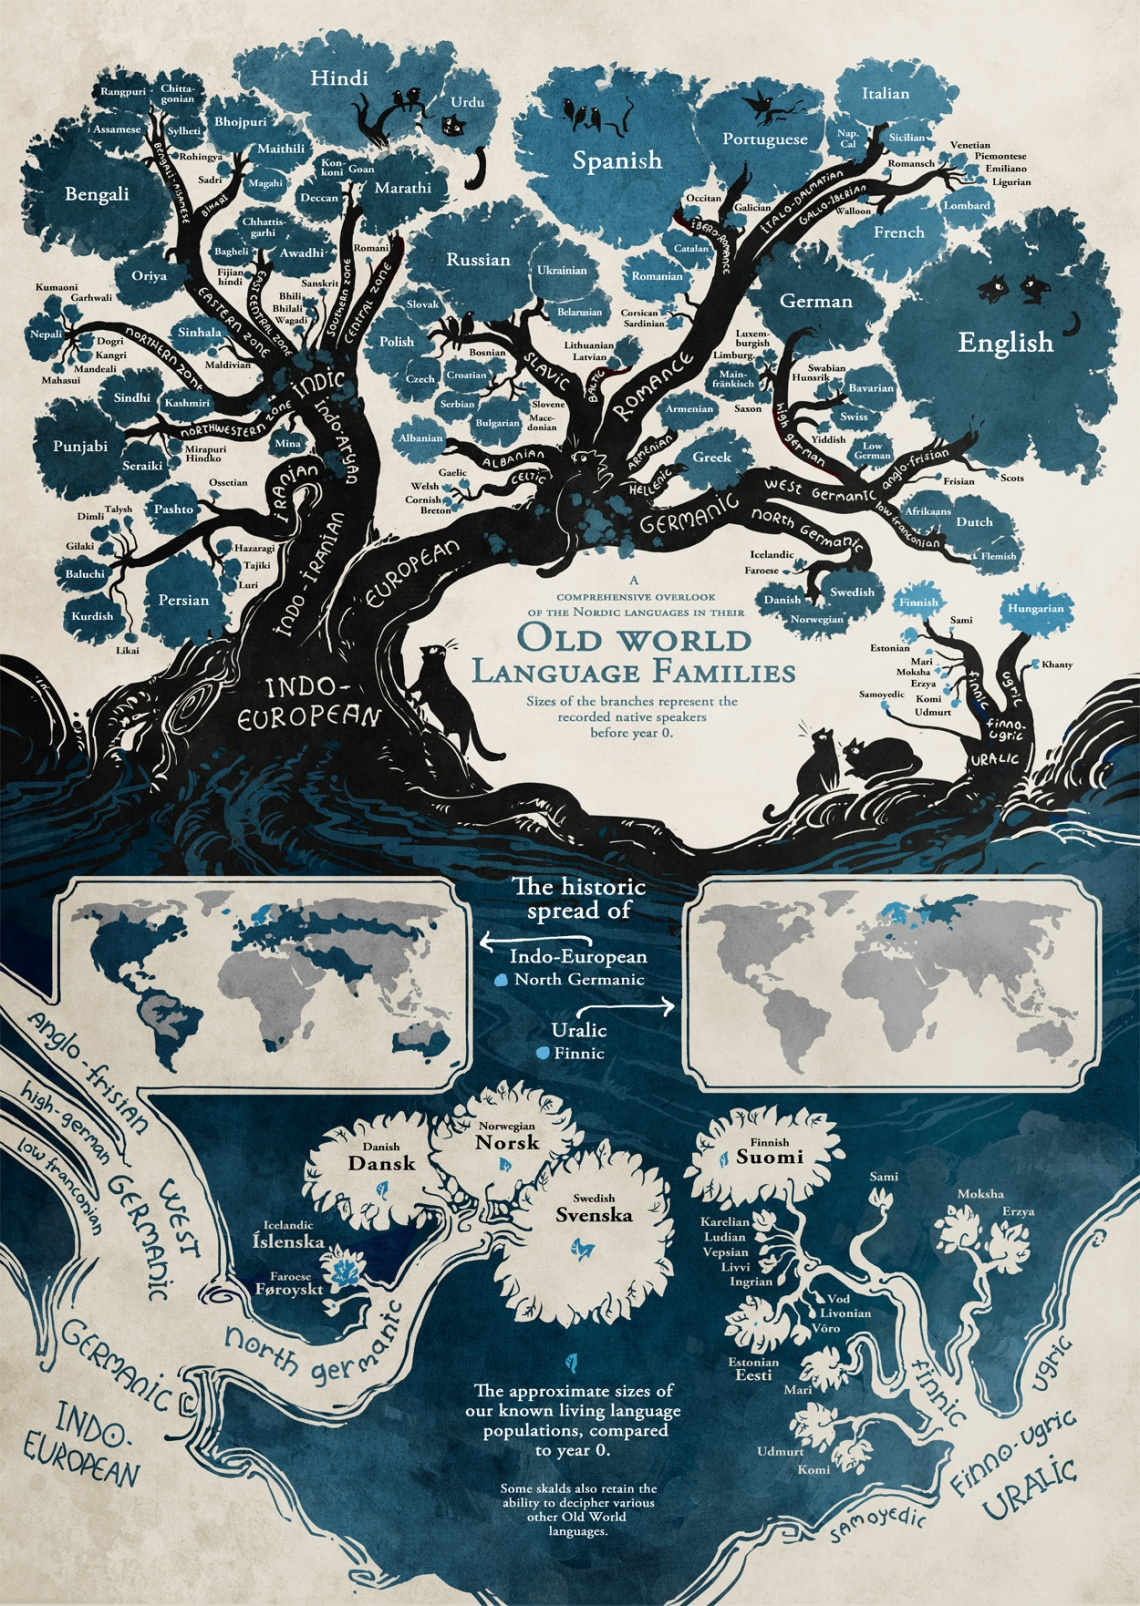 A history of the world's languages as a gnarly willow tree